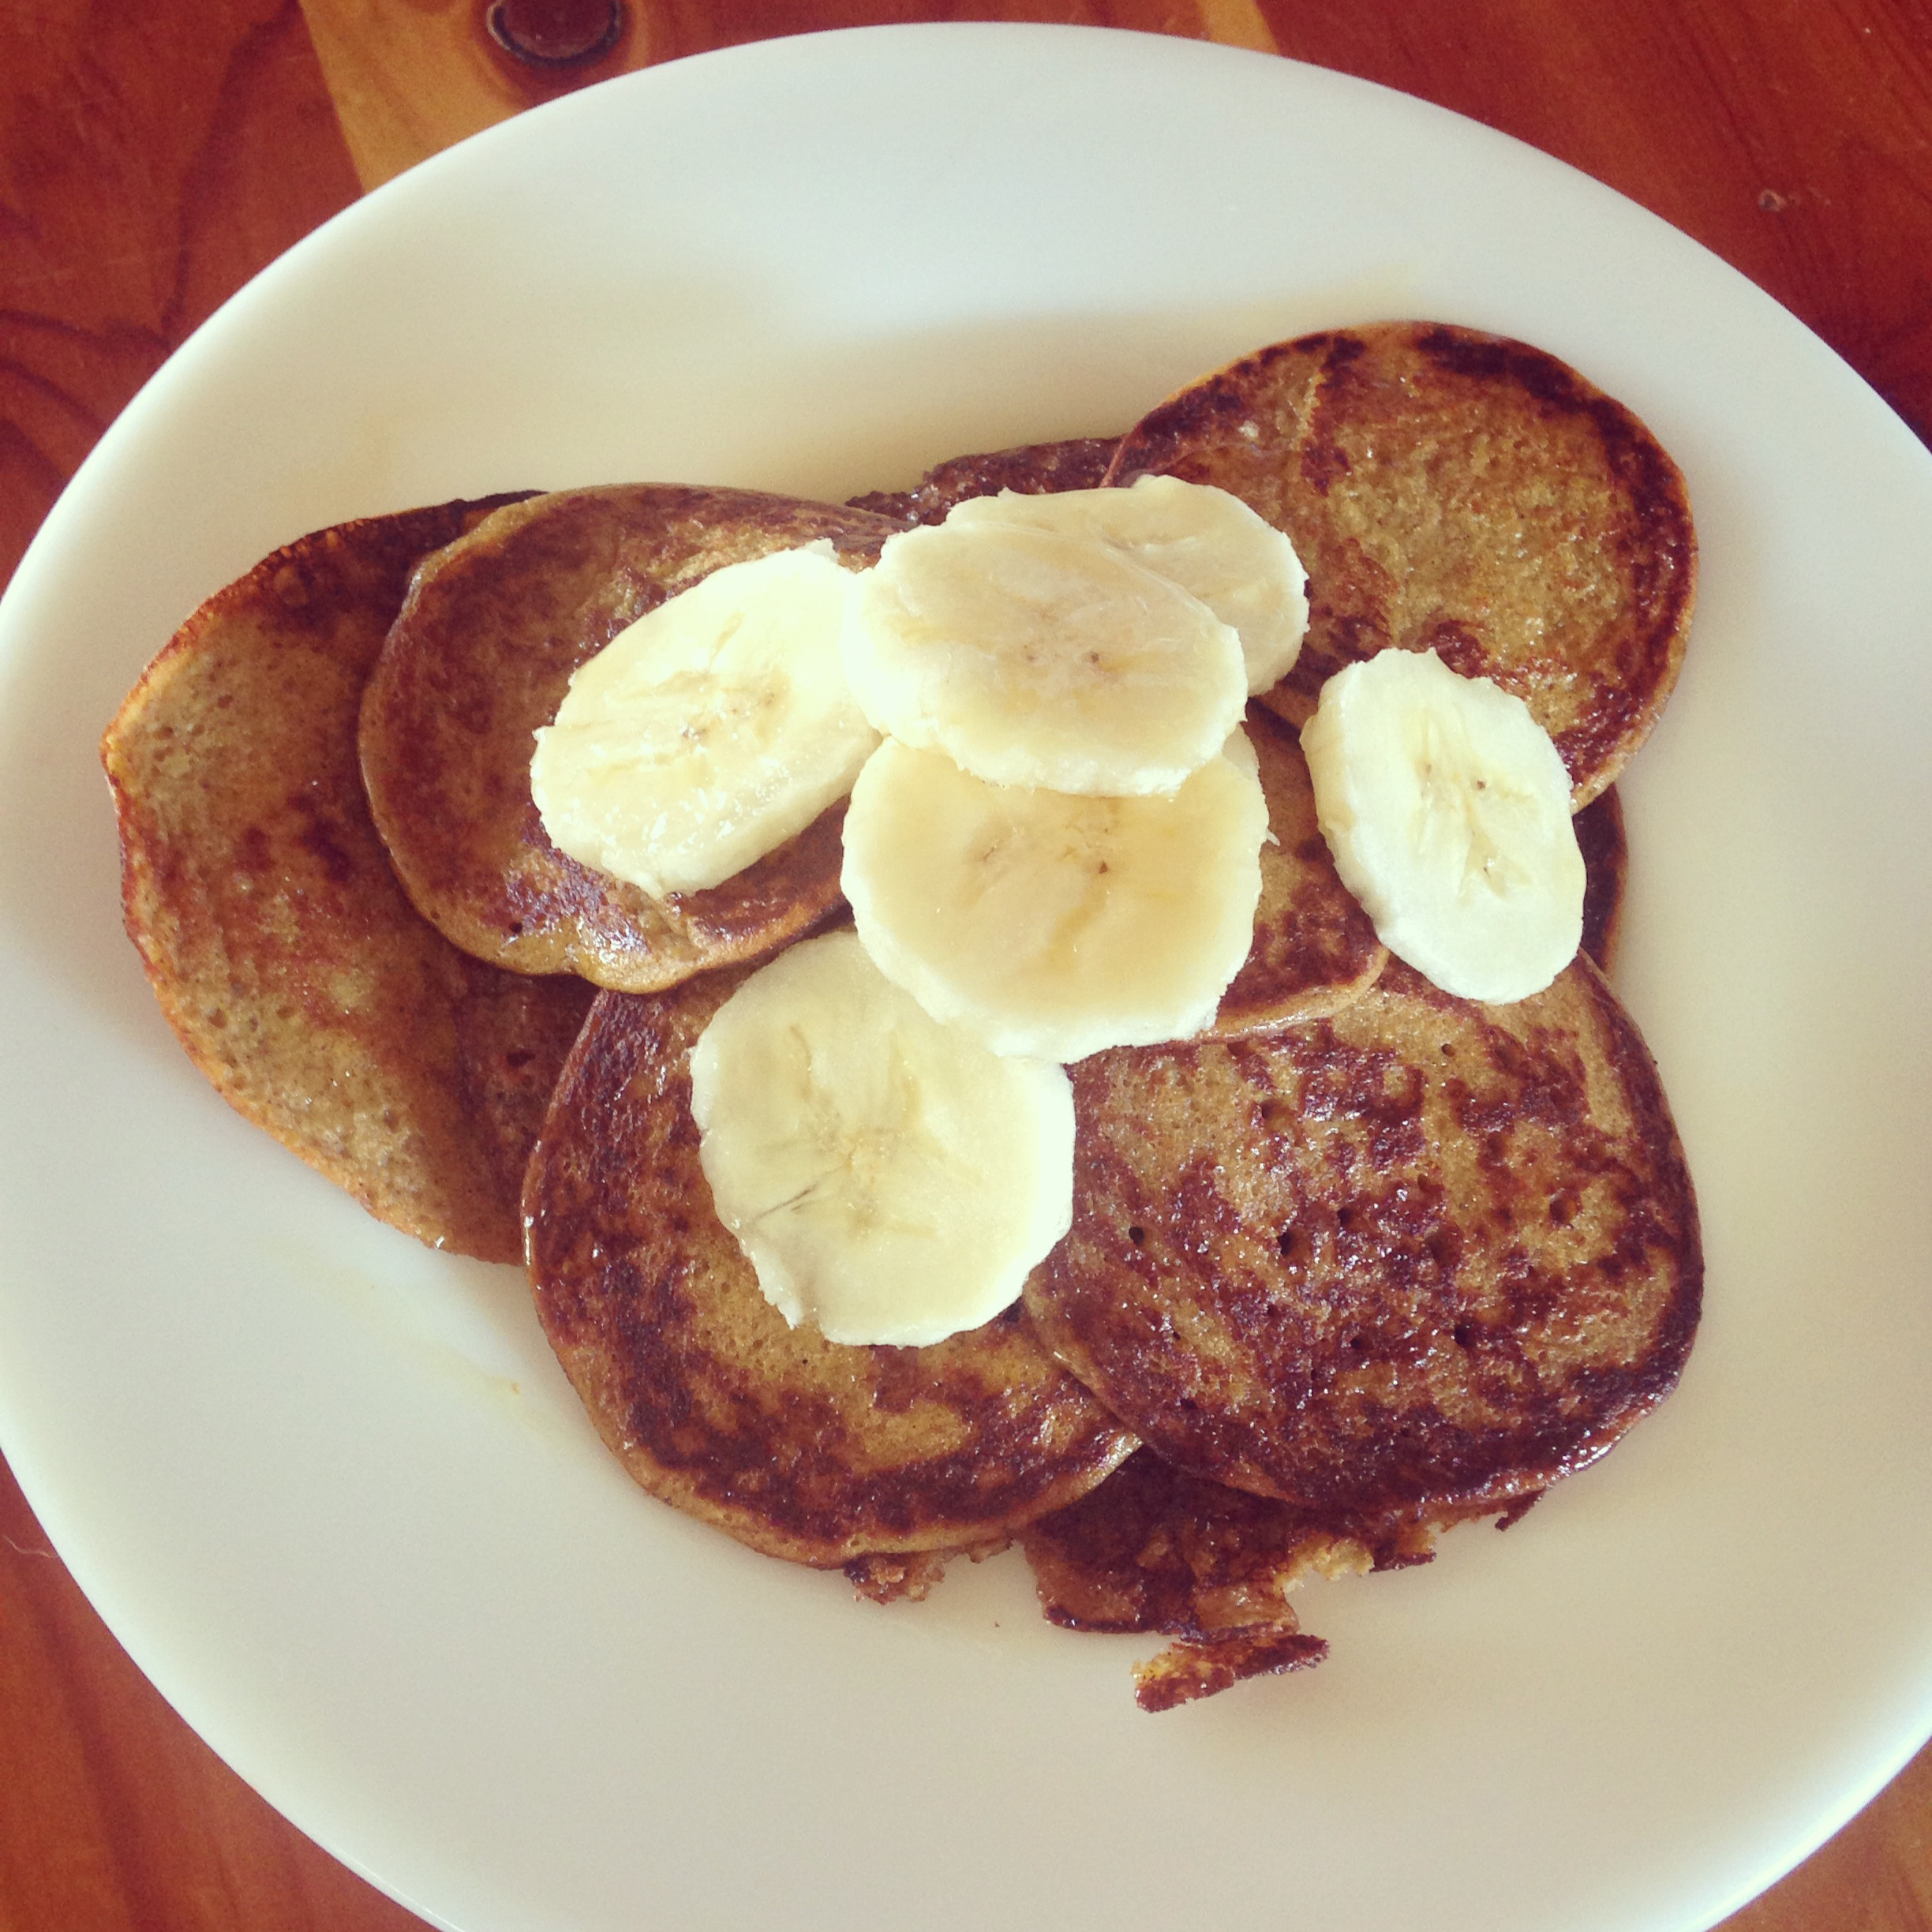 (Grain-free) Almond Butter & Banana Pancakes